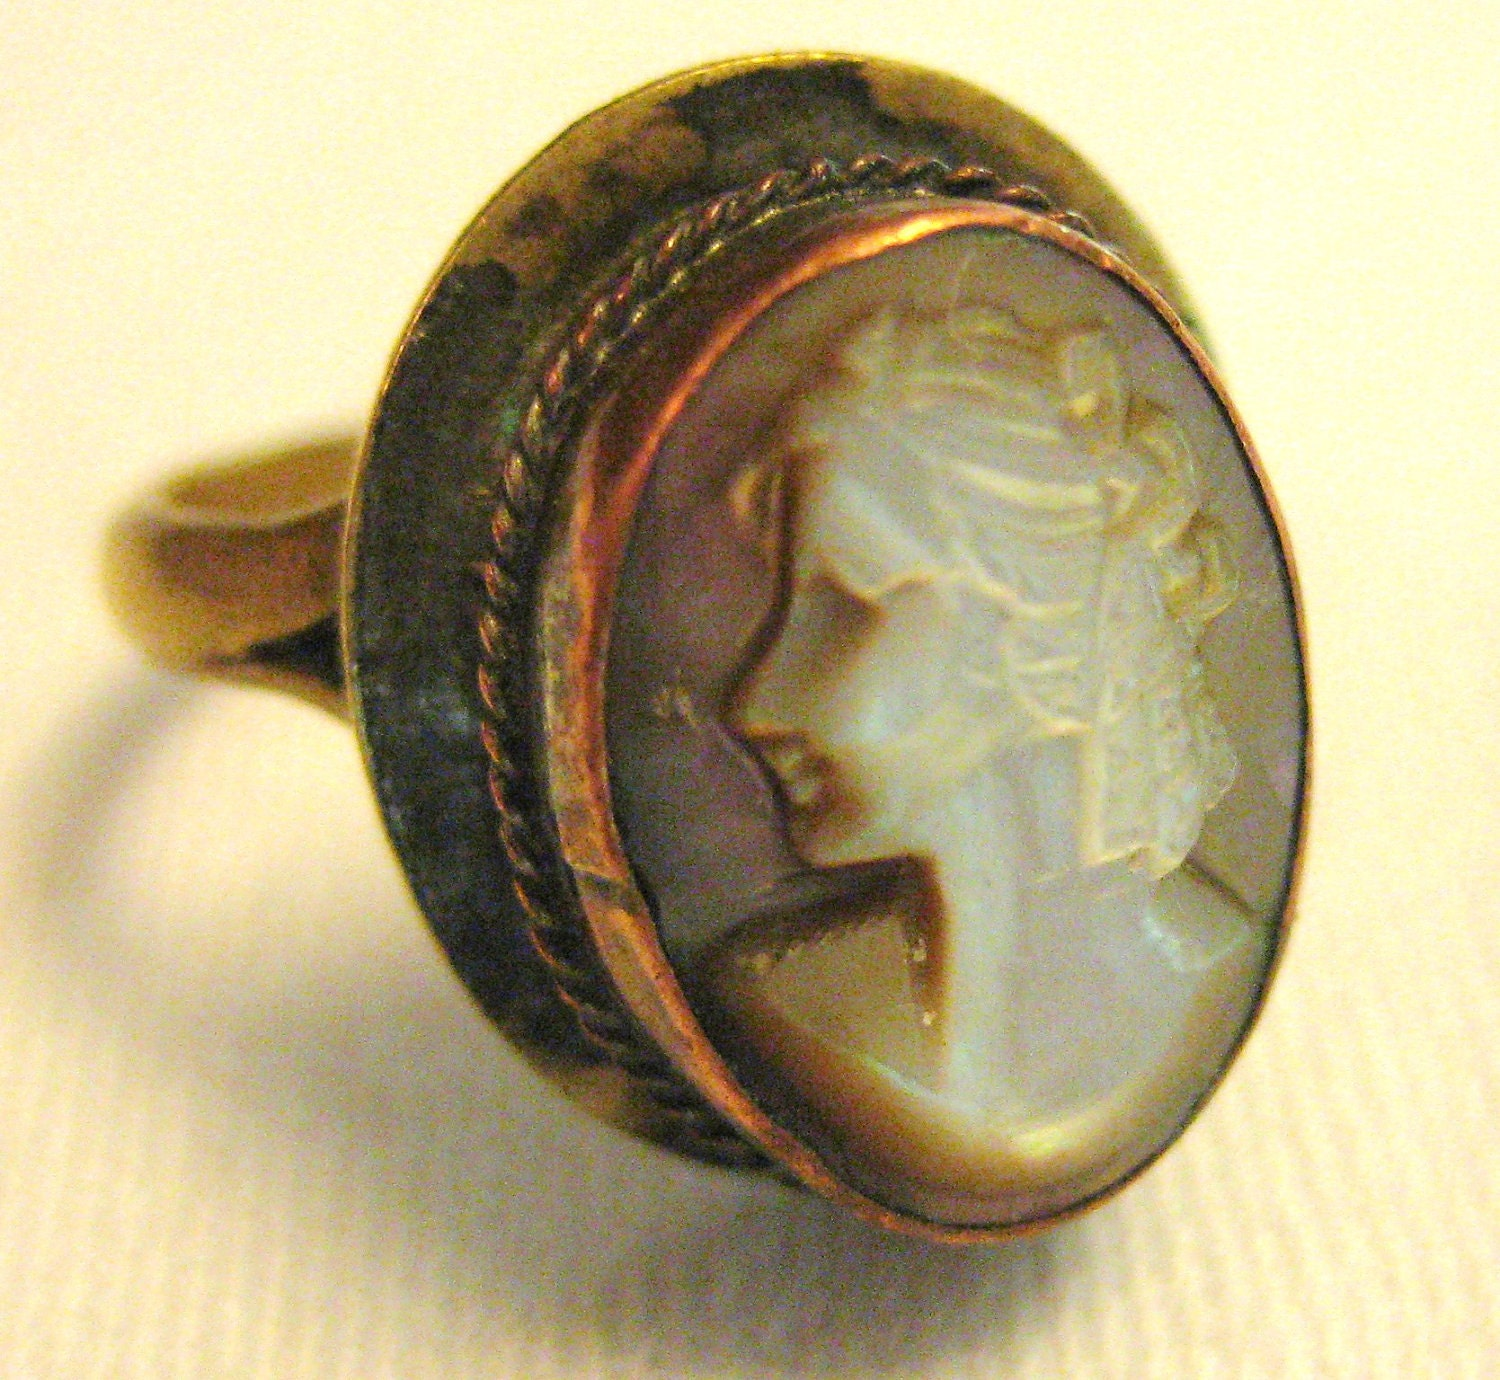 Vintage Mother of Pearl Cameo Ring by Barneche - Barneche